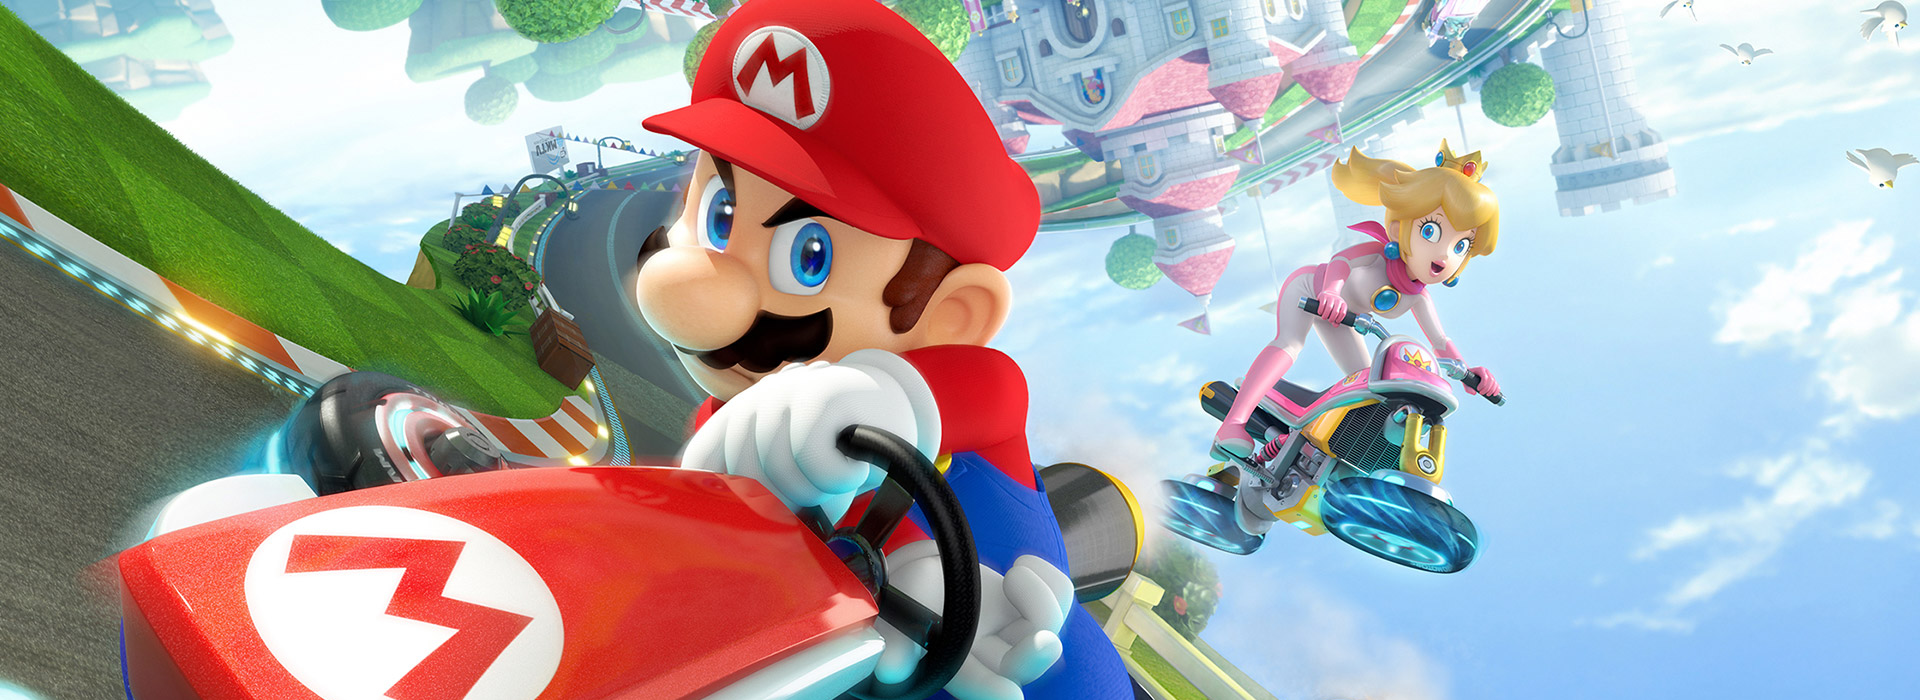 Mario Kart 8 Review: Where We're Going, We Don't Need Roads